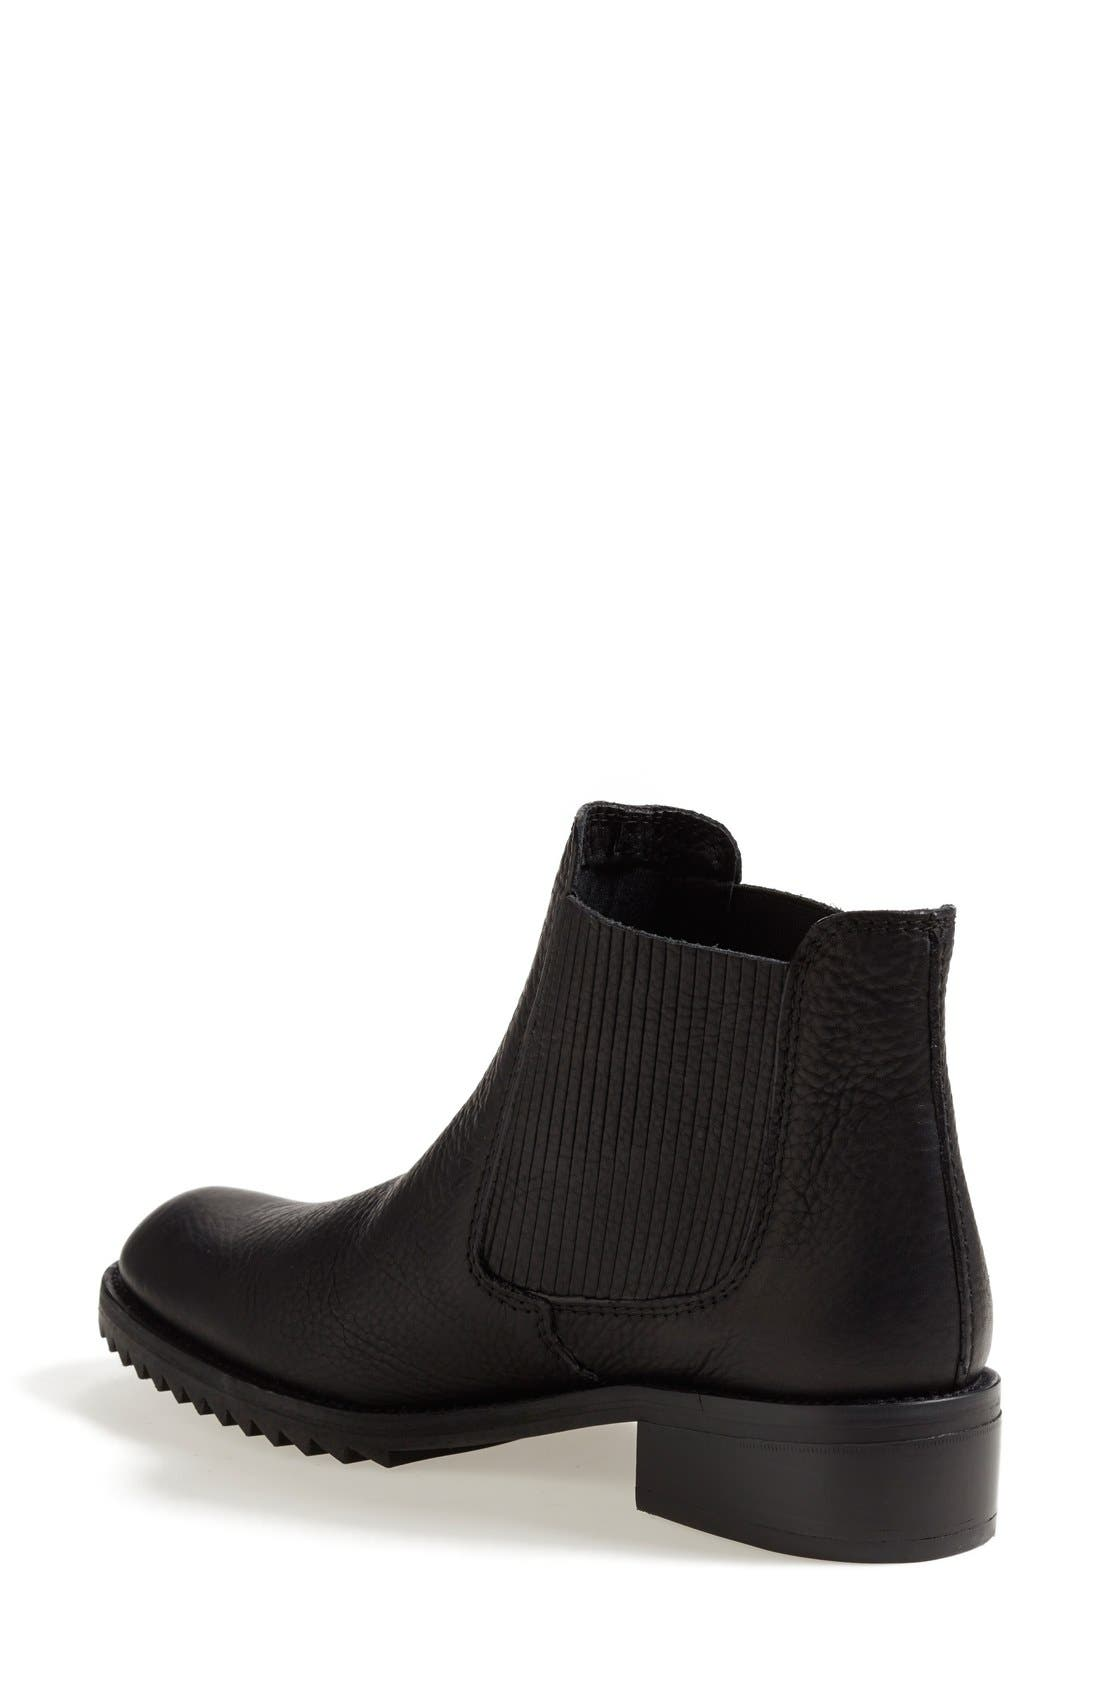 Alternate Image 2  - Pedro Garcia 'Odalys' Chelsea Boot (Women)